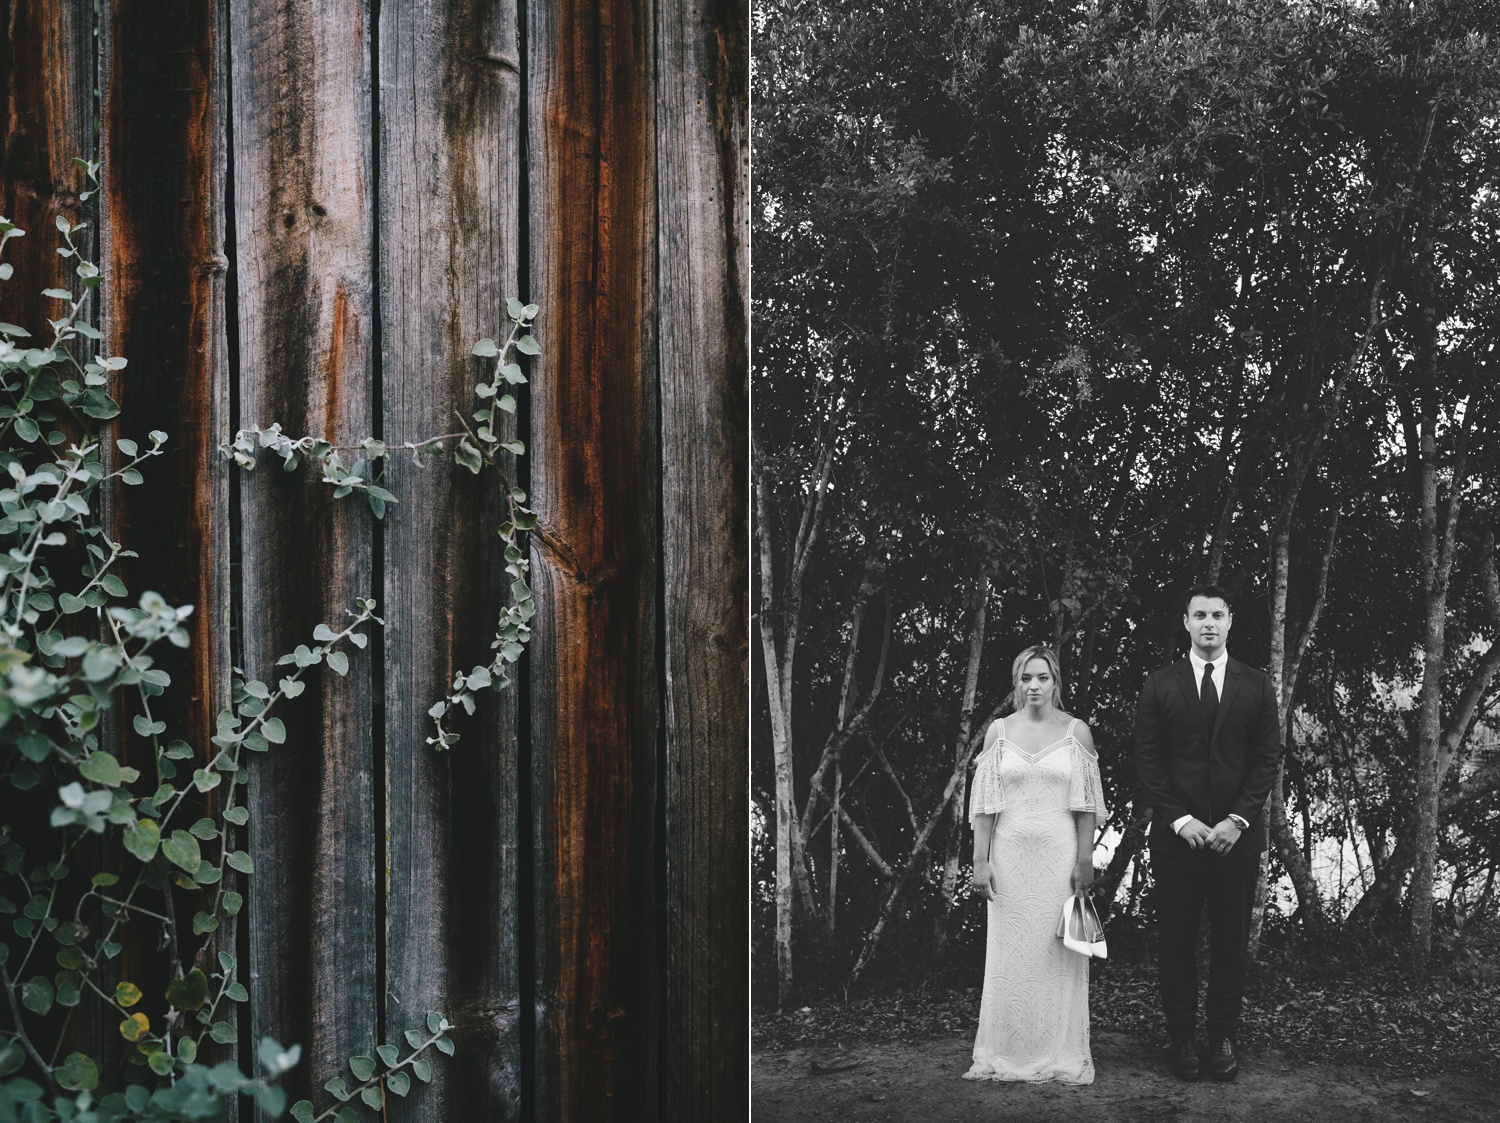 charlie_ray_photography_runaway_romance_elopement_emily_moon_plett_simple_boho_wedding_south_africa_bohemium_0109.jpg